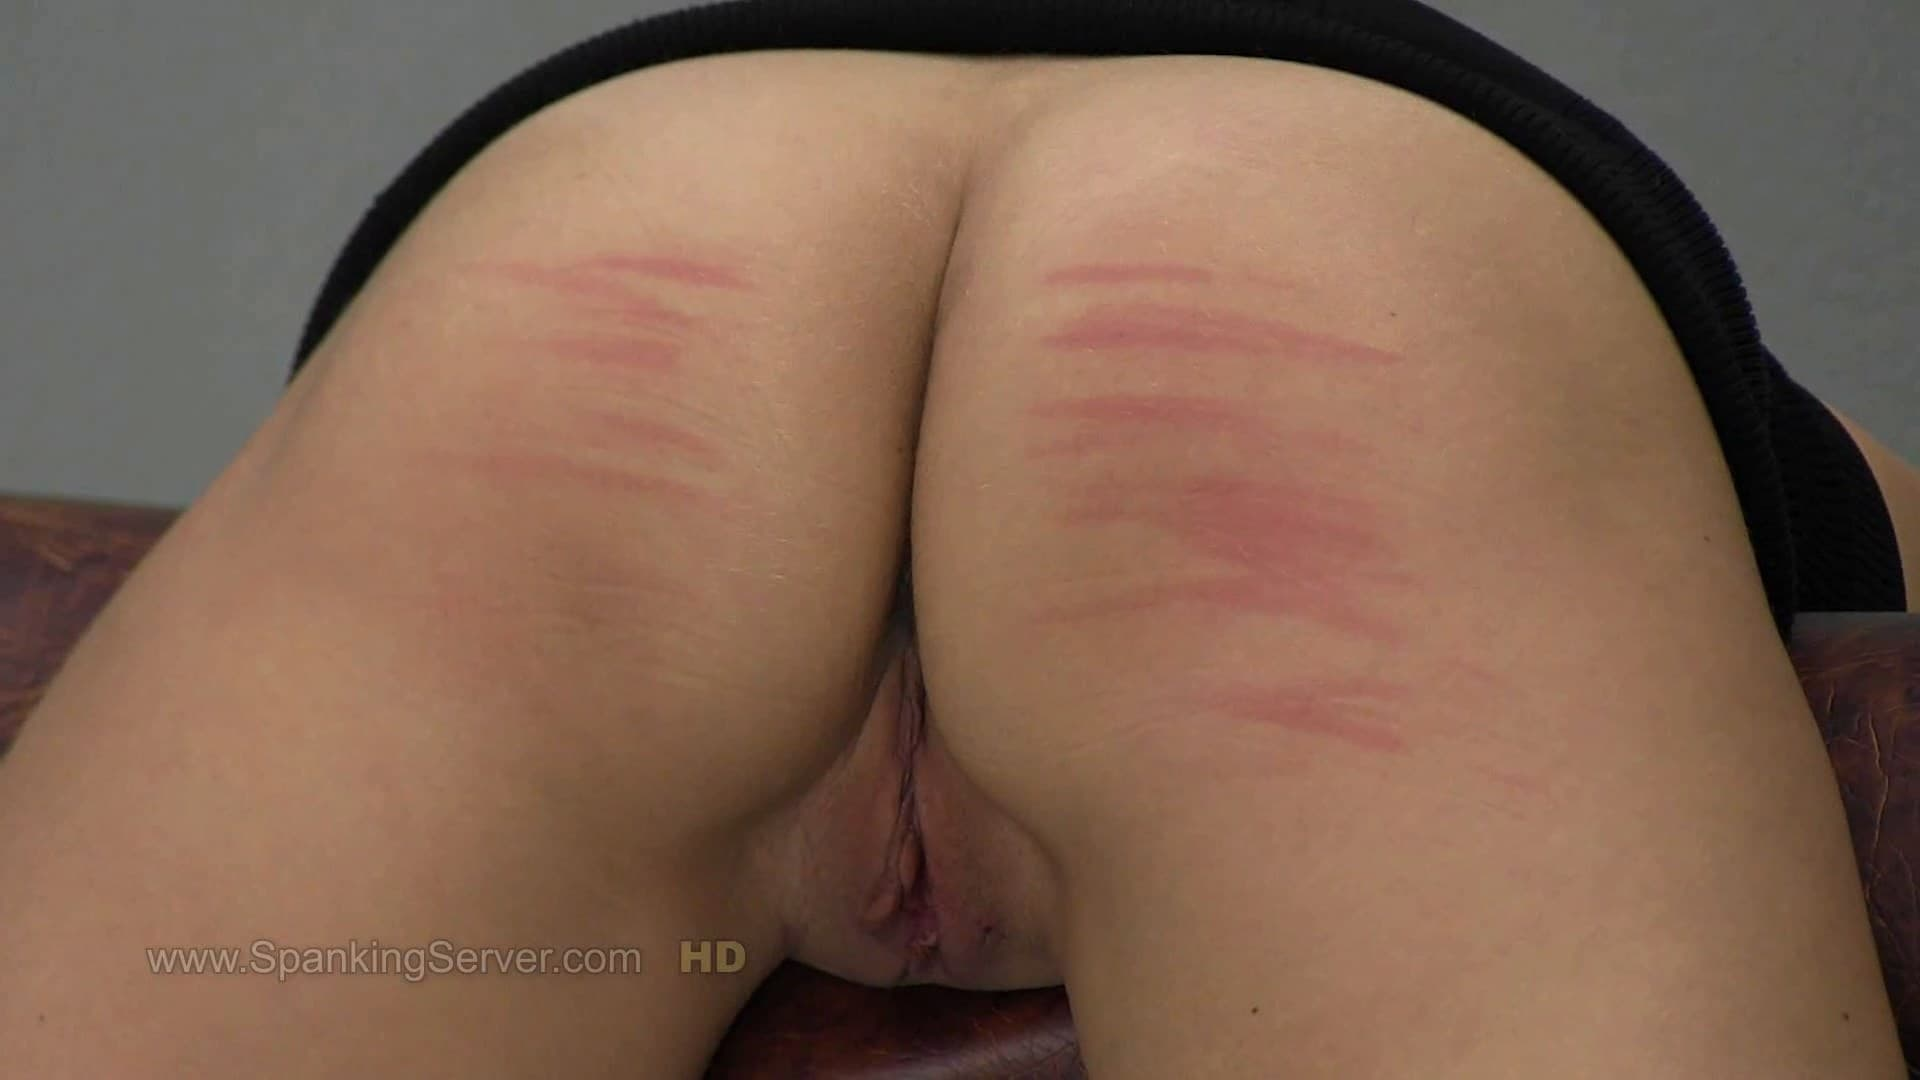 Spanking Server – MP4/HD – Candy – 2020 – 52 Week